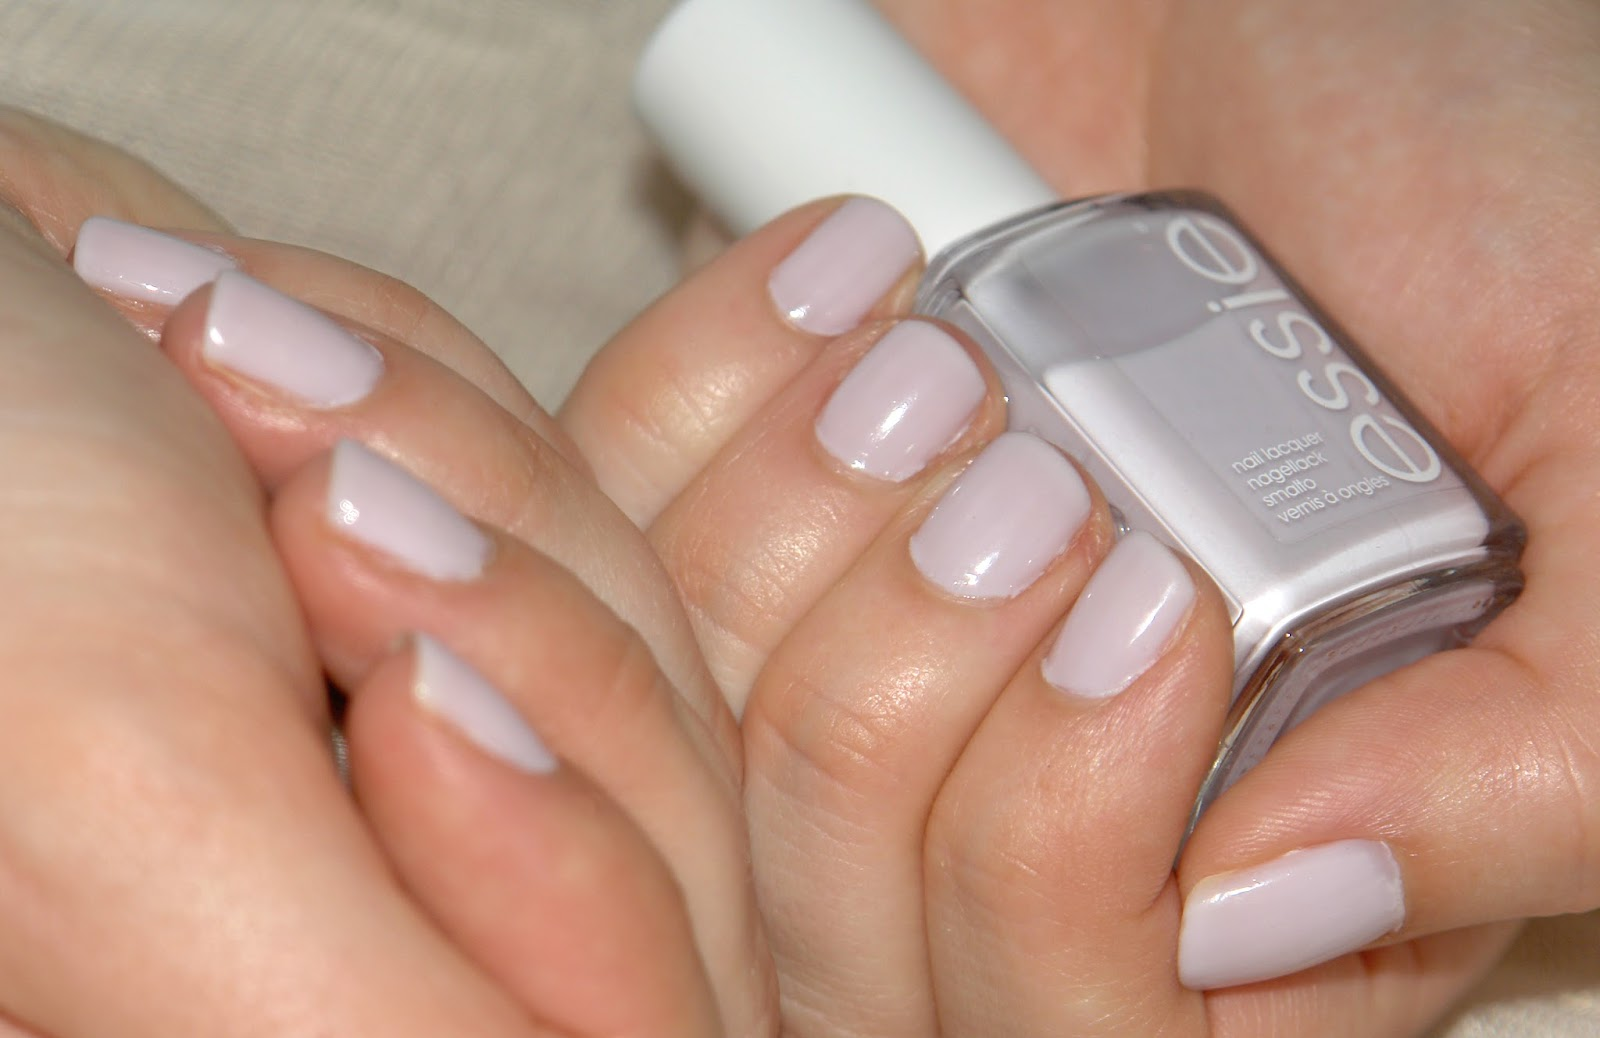 NAILS: Essie hubby for dessert, Essie, nail polish, nails, NOTD, swatches